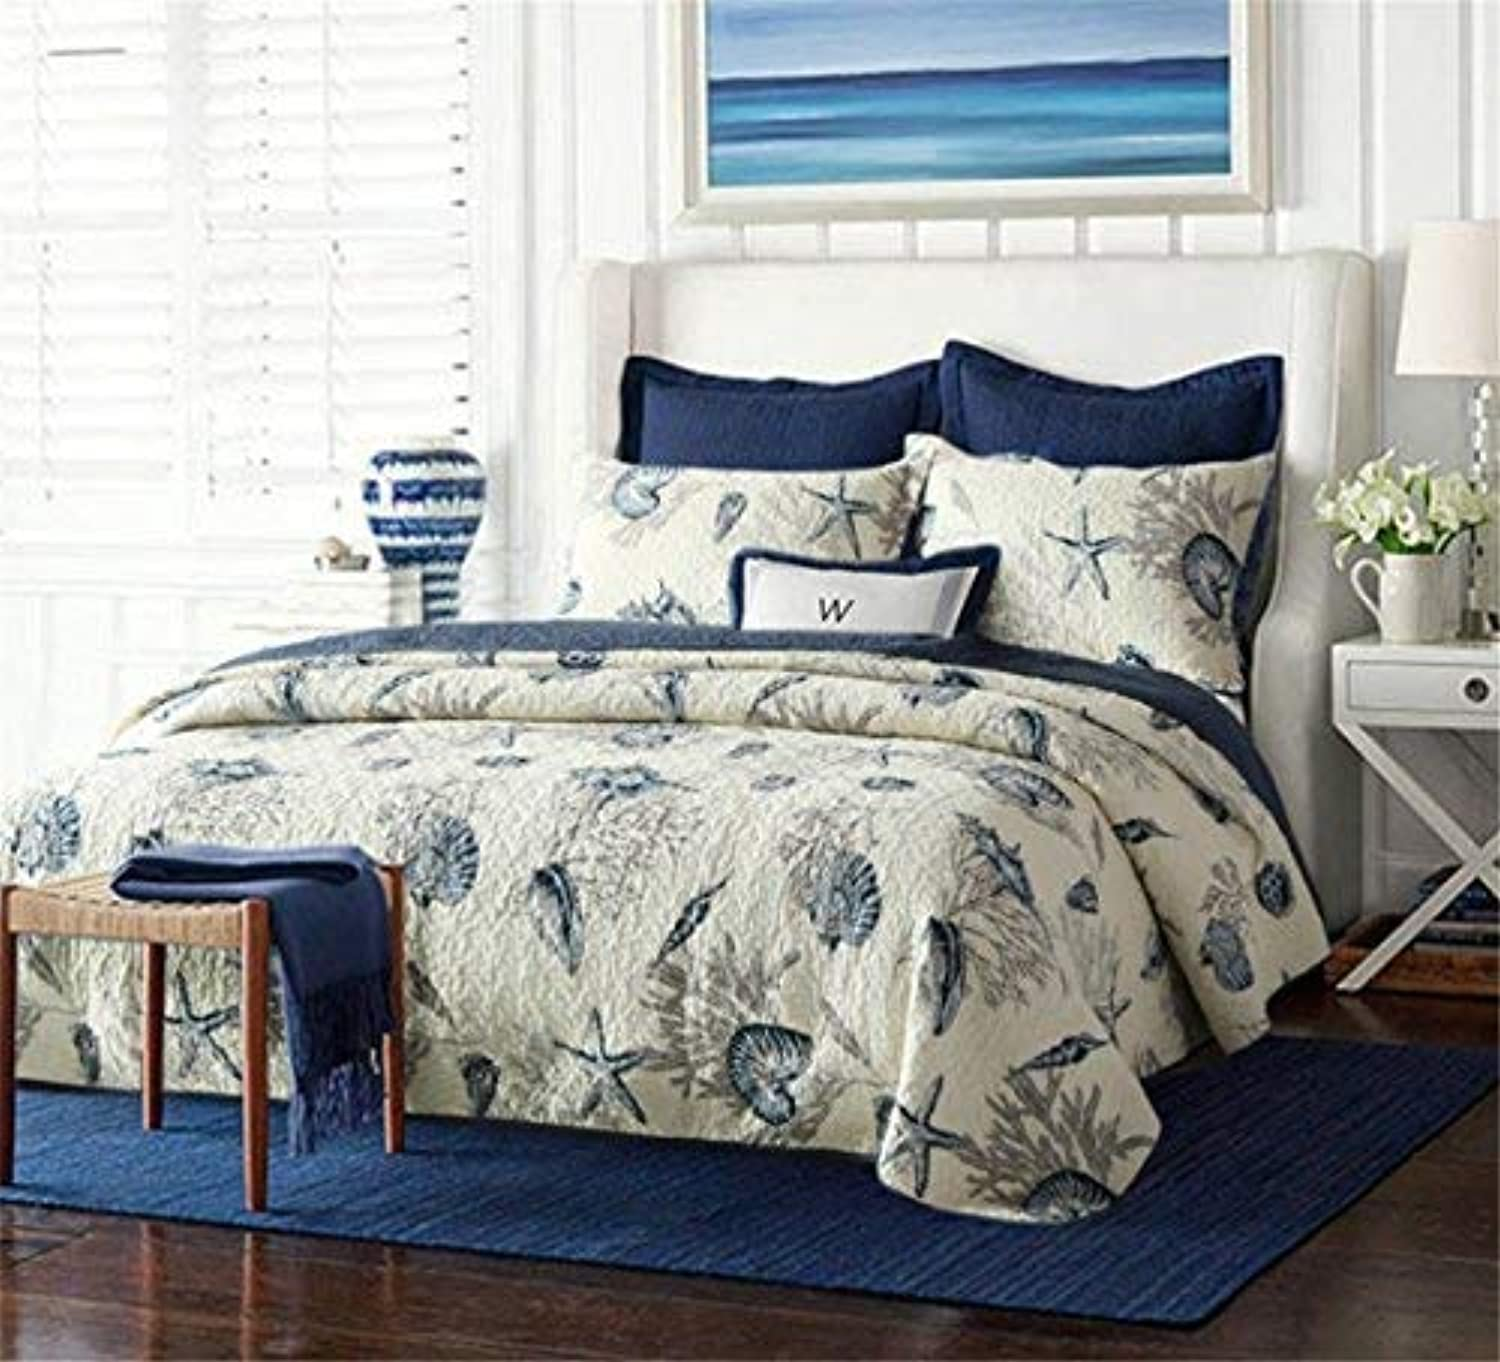 bluee Shell Tread Design 2 Piece Comforter Quilt Bedspeads Sets Cotton White&bluee (King)